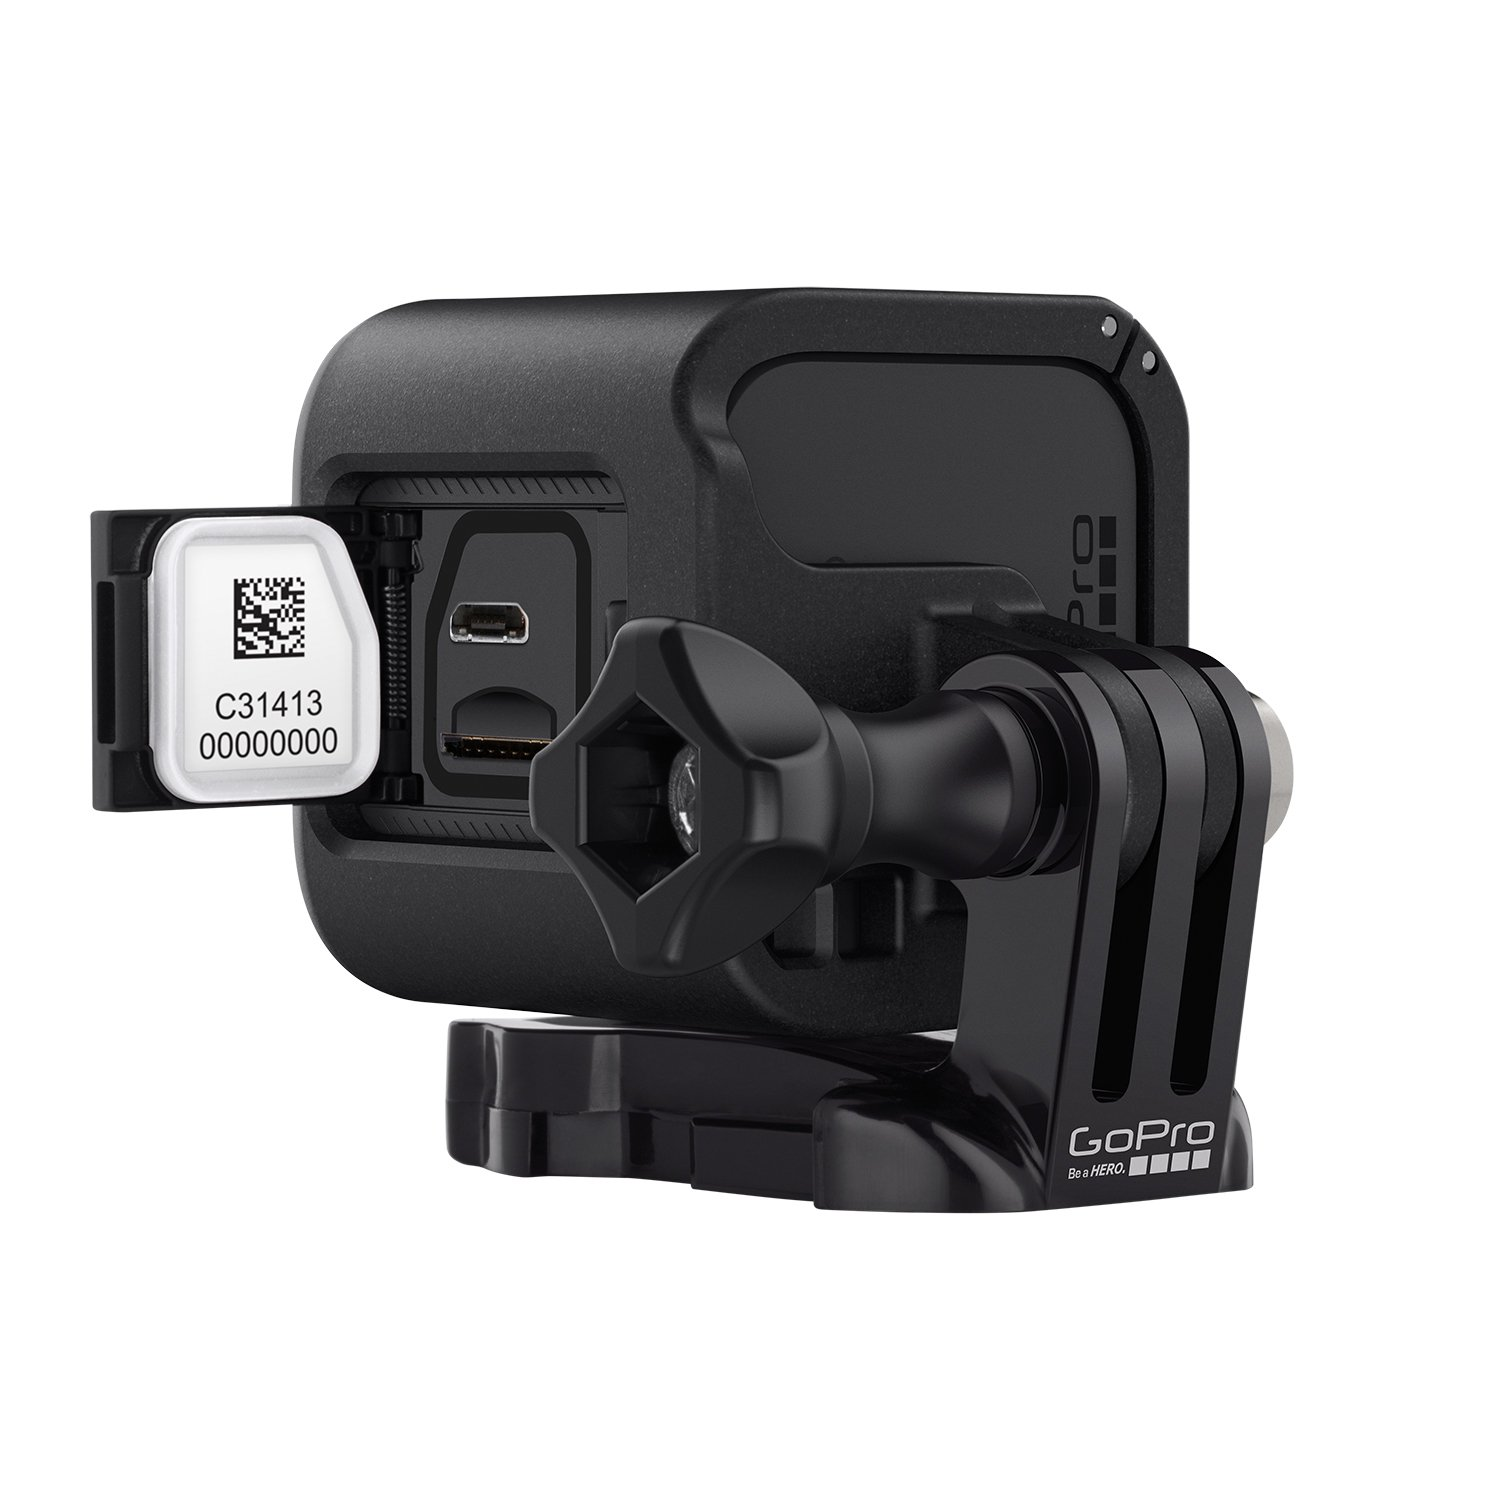 GoPro HERO4 Session Caméra embarquée 8 Mpix Wifi Bluetooth Noir Amazon.fr Photo  Caméscopes